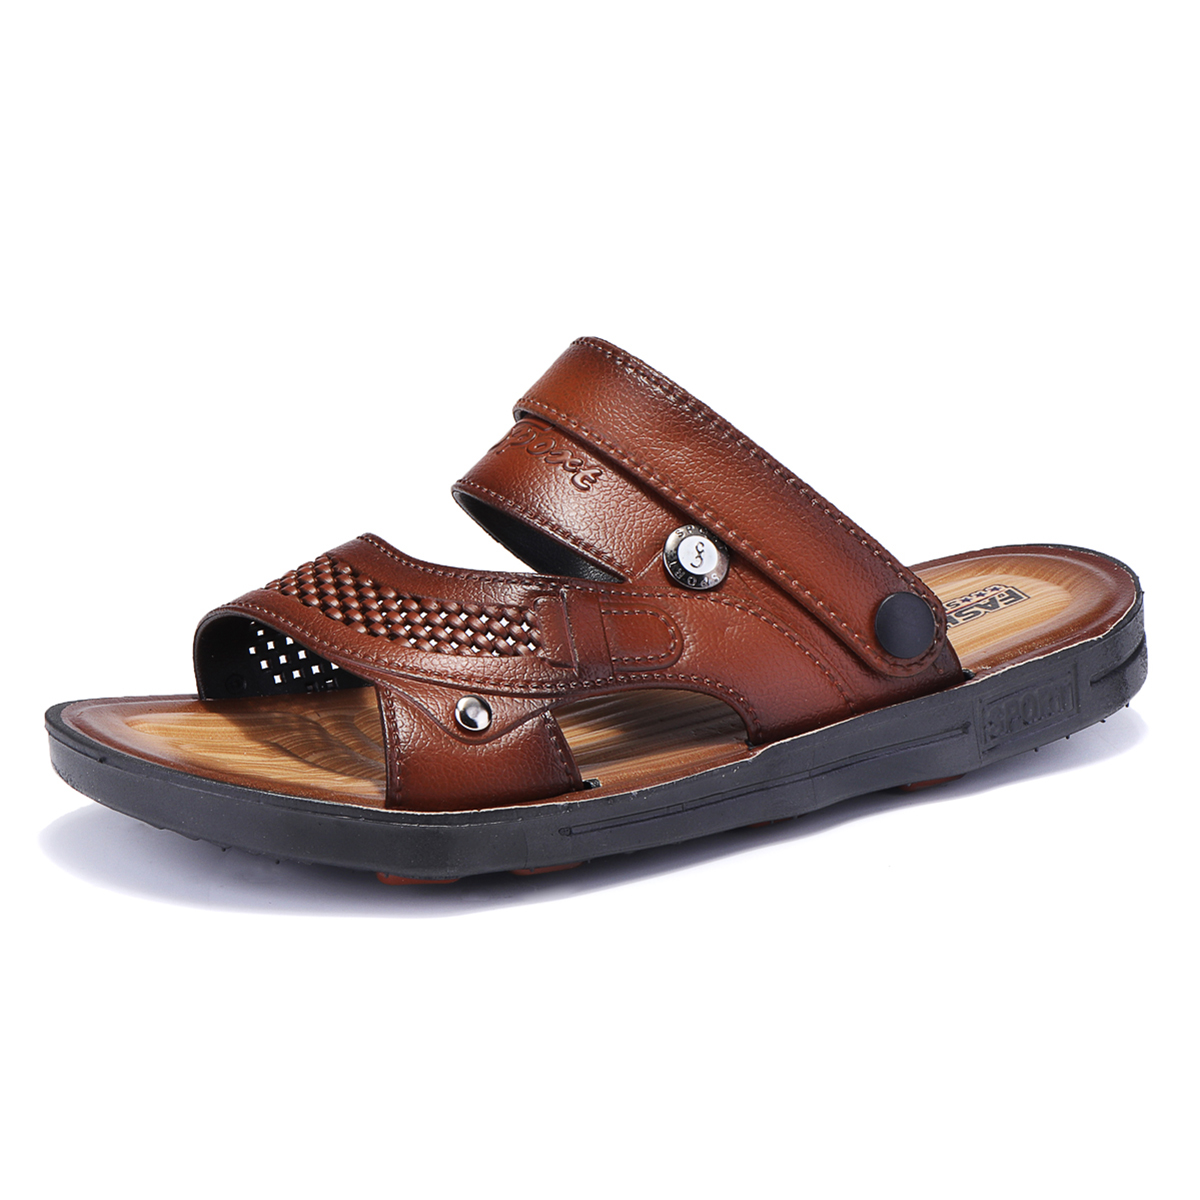 Men Comfy Two Way Wear Leather Sandals Beach Slippers